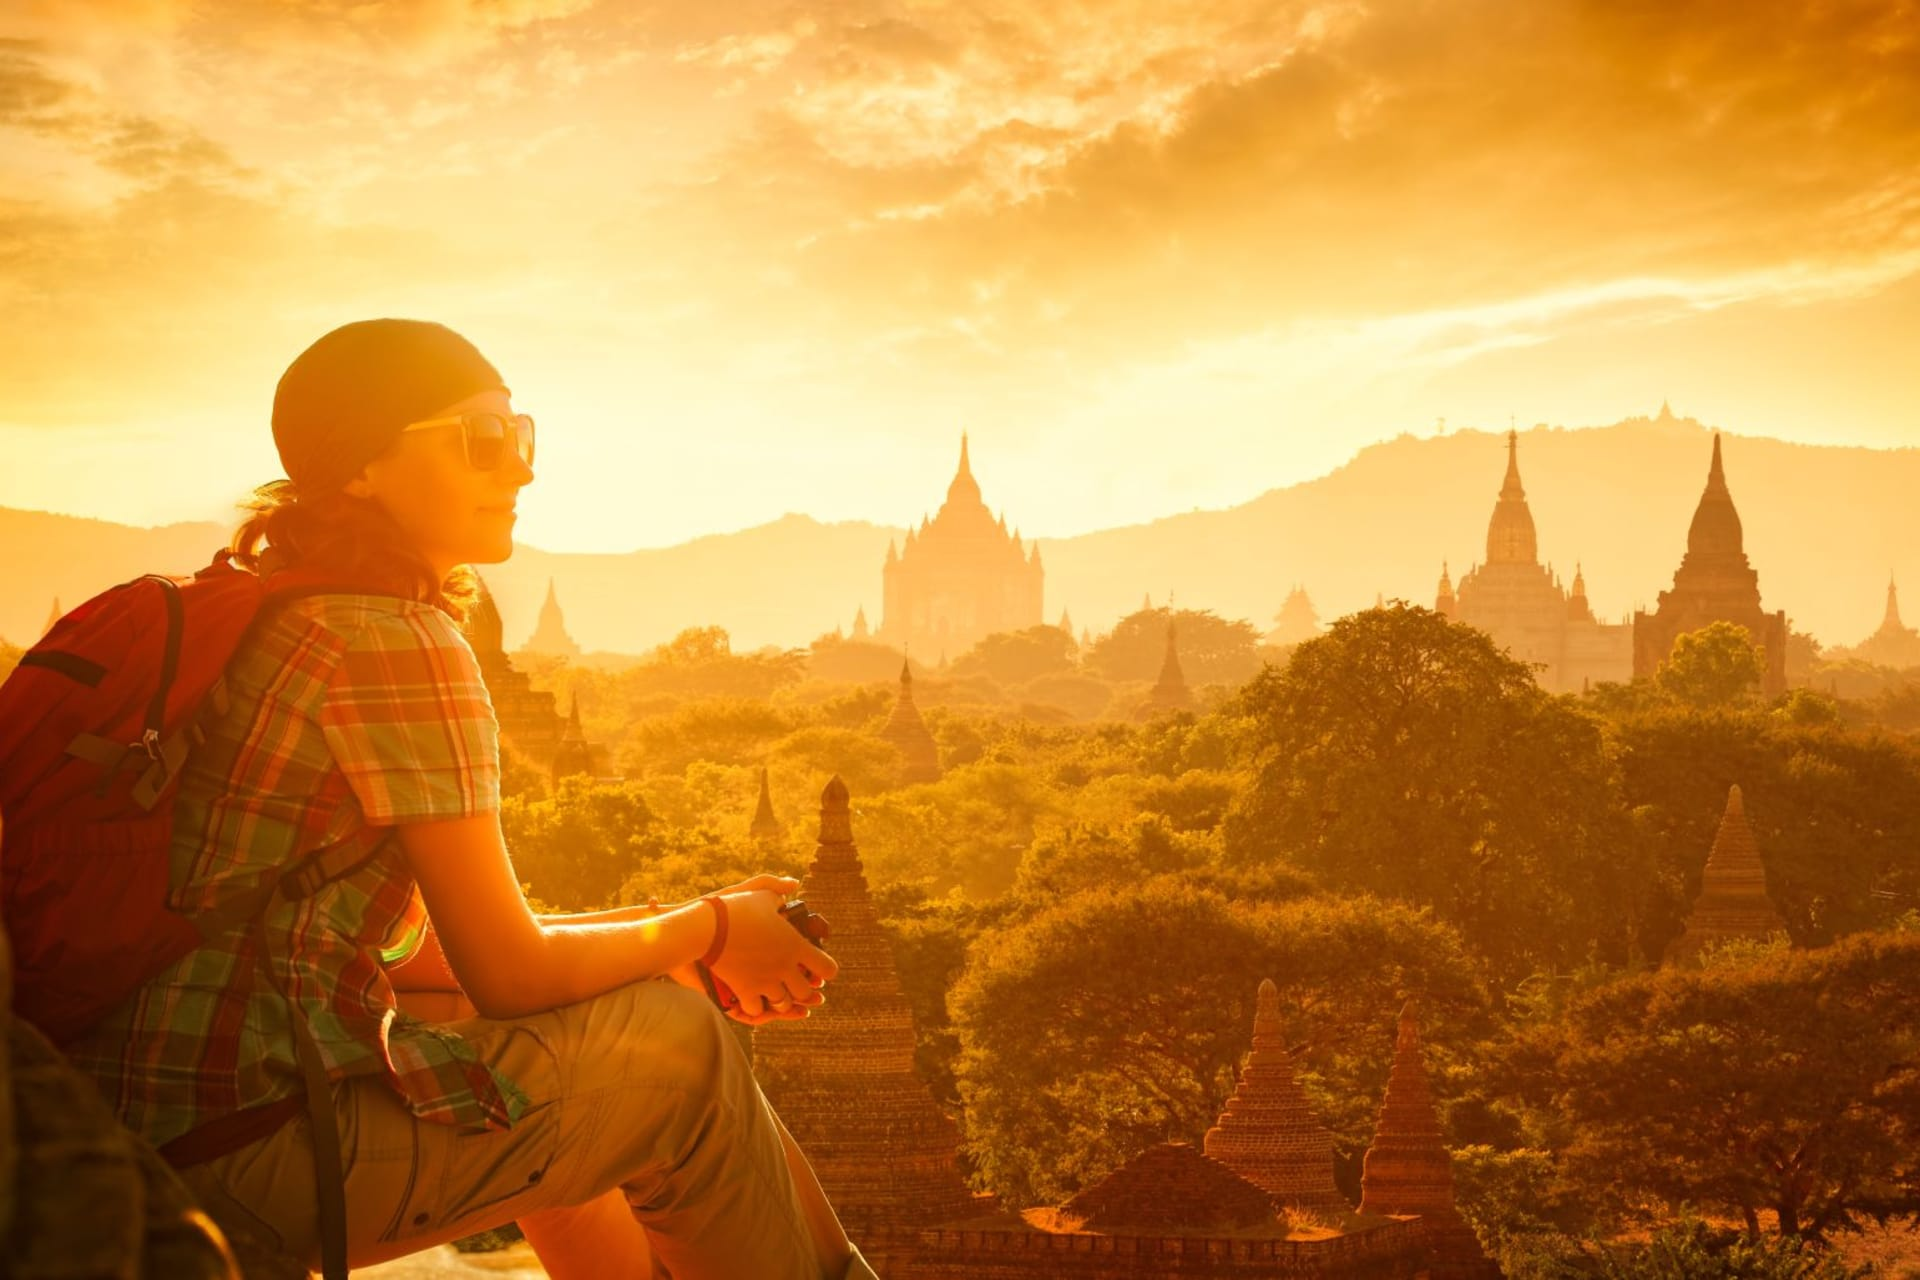 Bagan Sunset with Traveller